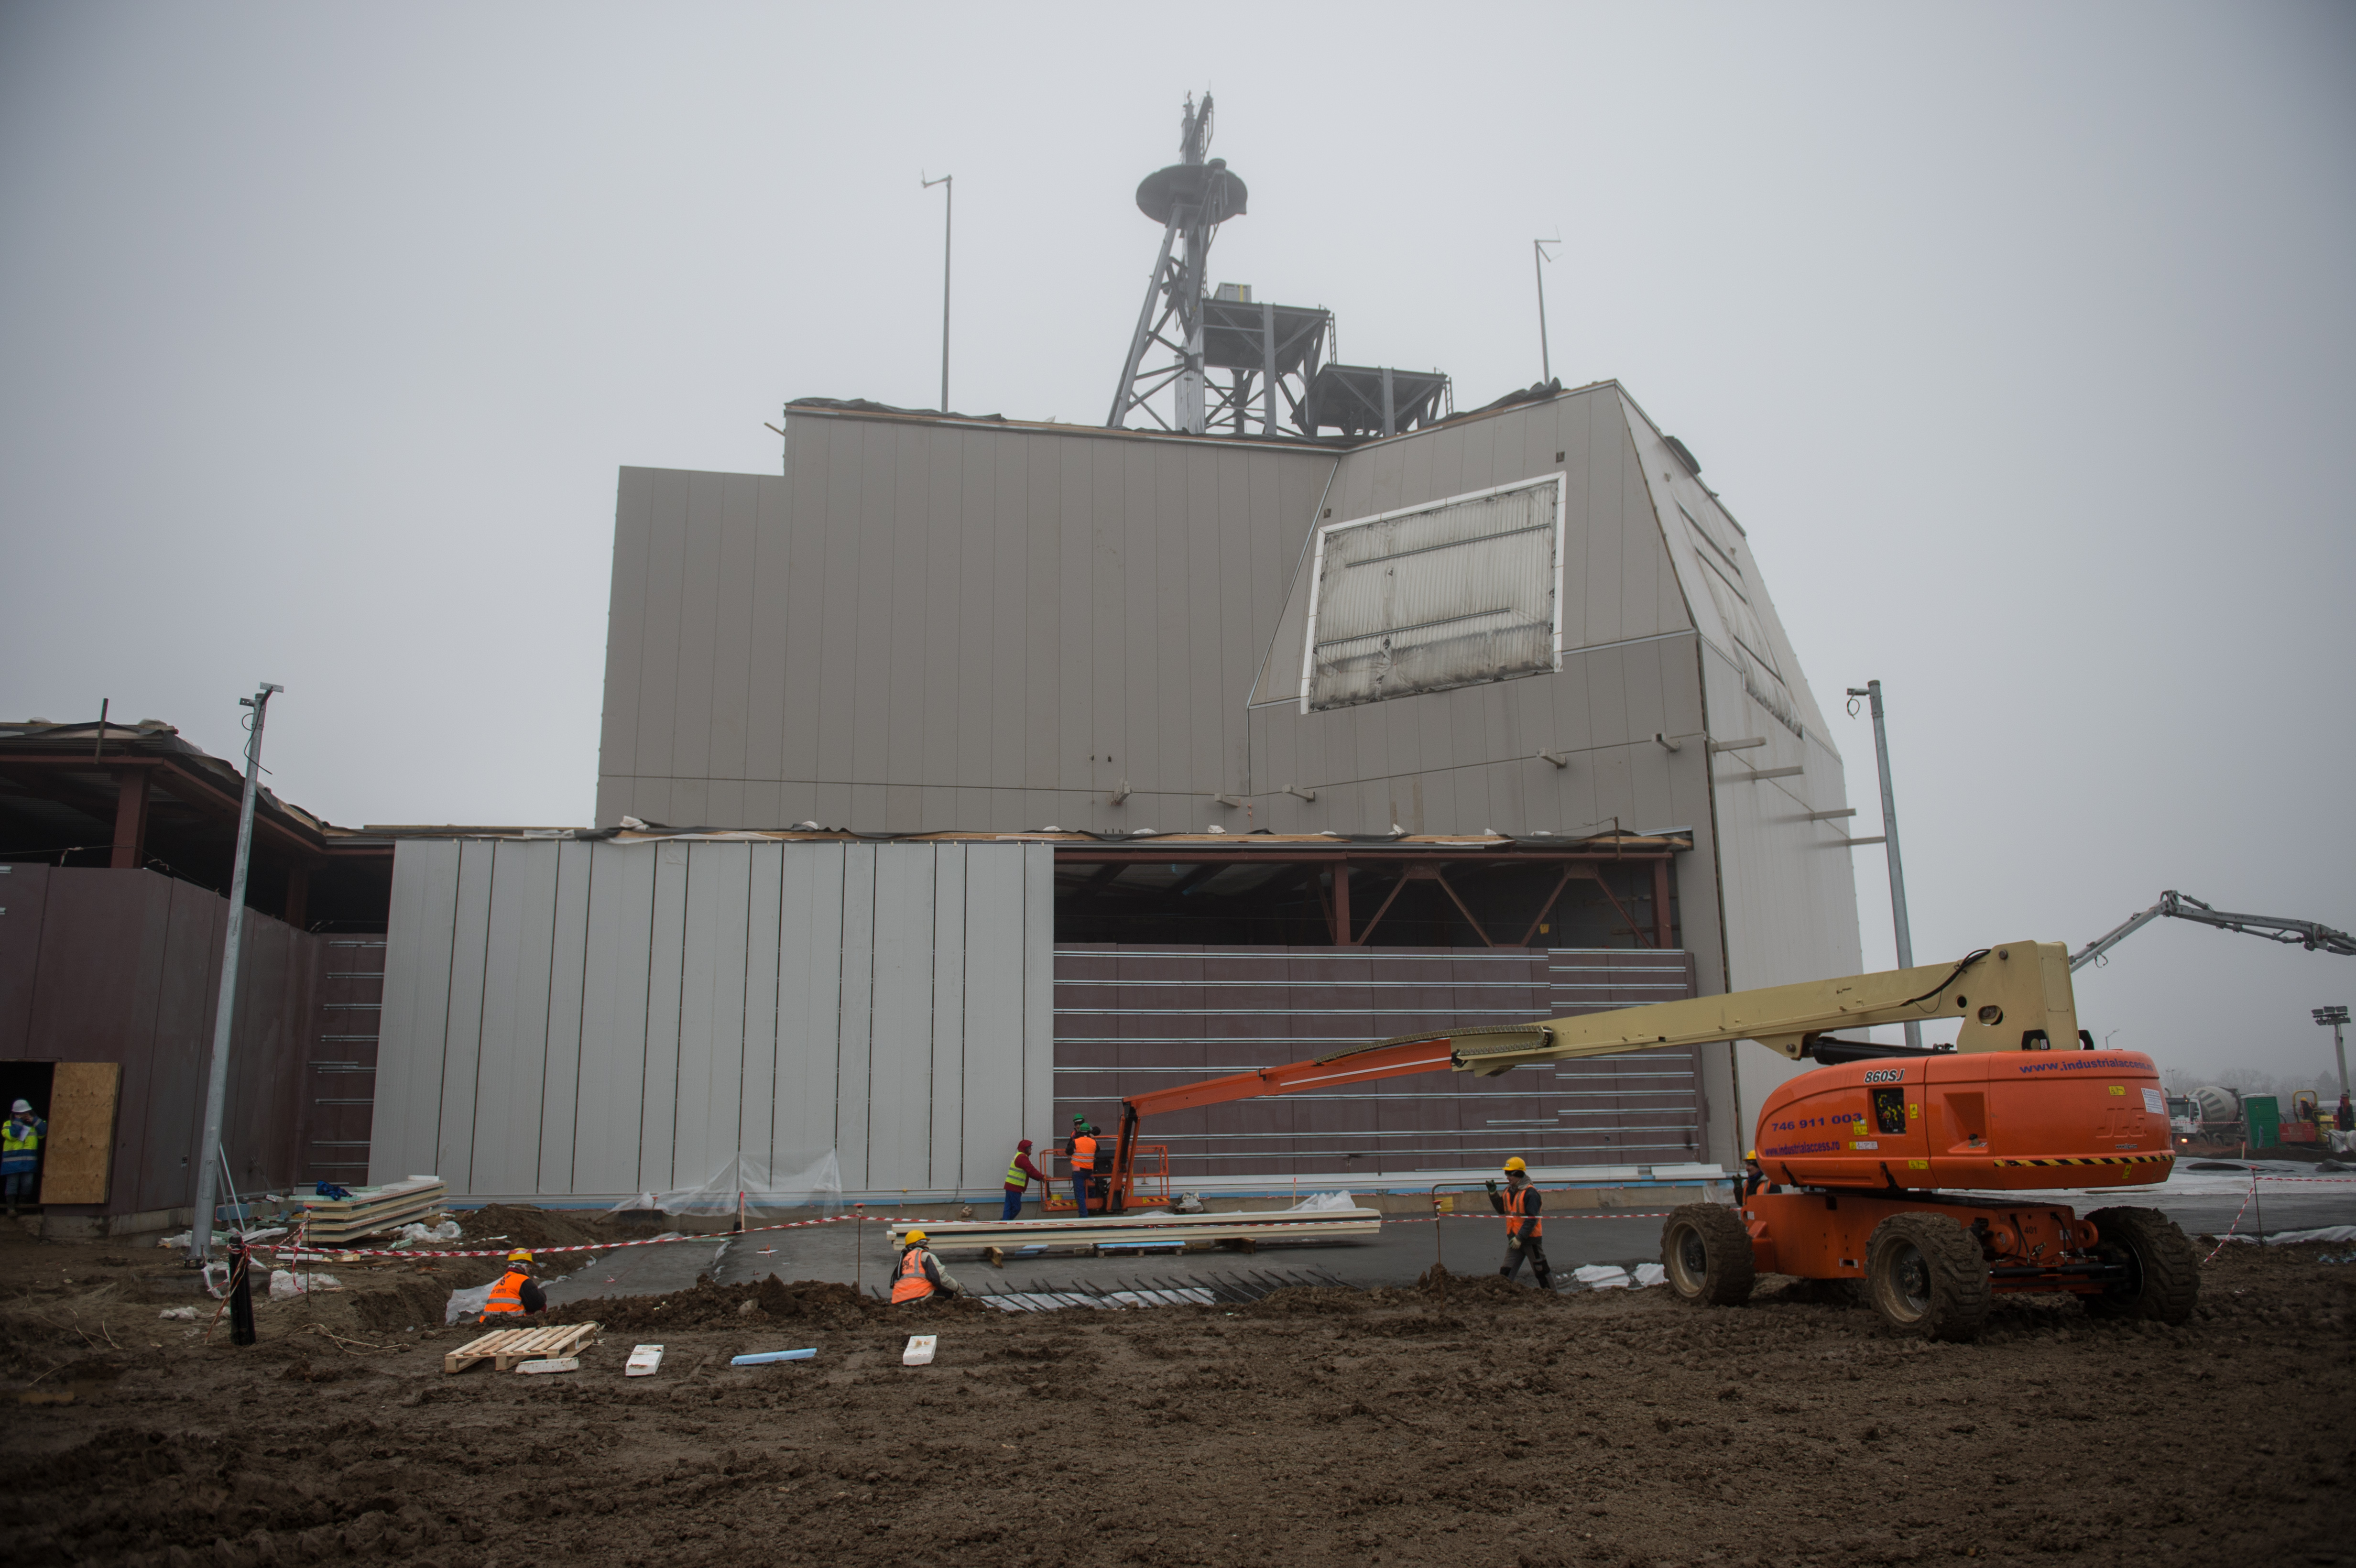 U.S. Navy Sailors and American and Romanian contractors construct a U.S. Aegis Ashore missile defense system at Naval Support Faculty Deveselu, Romania in January 2015. US Navy photo.